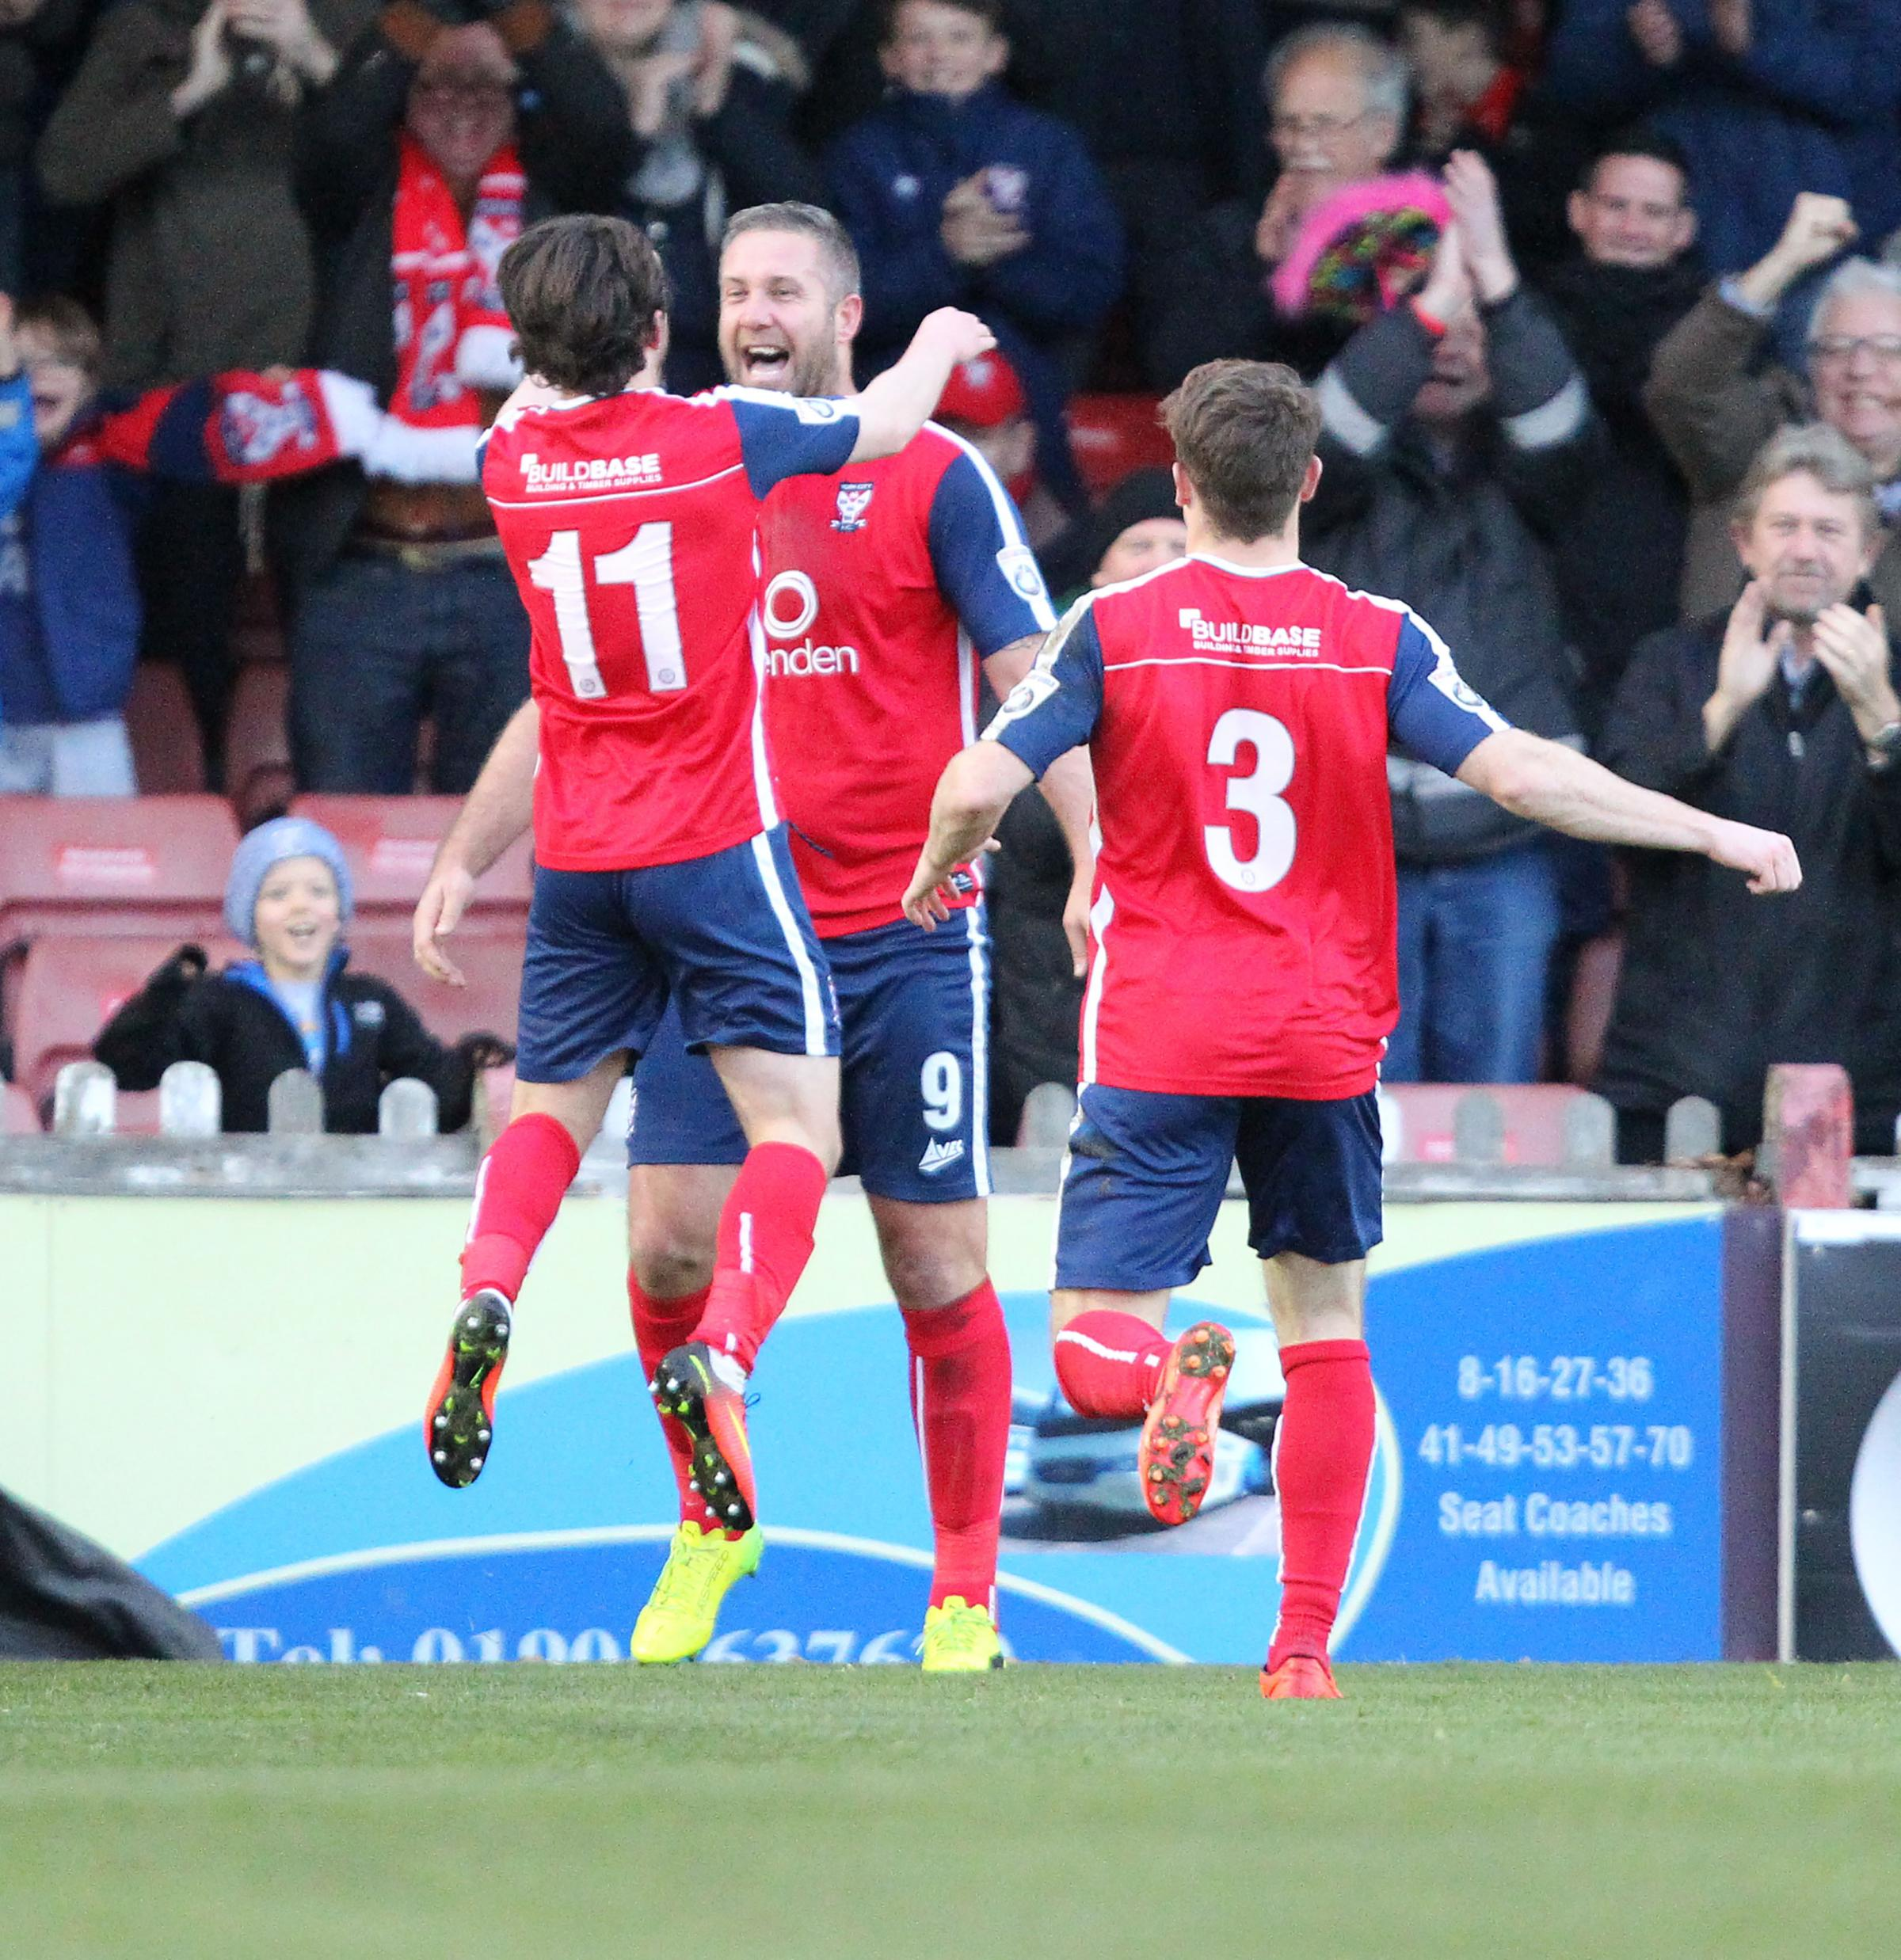 JUMP IN STANDARD: Aidan Connolly congratulates Jon Parkin on his goal against a Kidderminster side that York City boss Martin Gray described as the National League North's best footballing team. Picture: Gordon Clayton